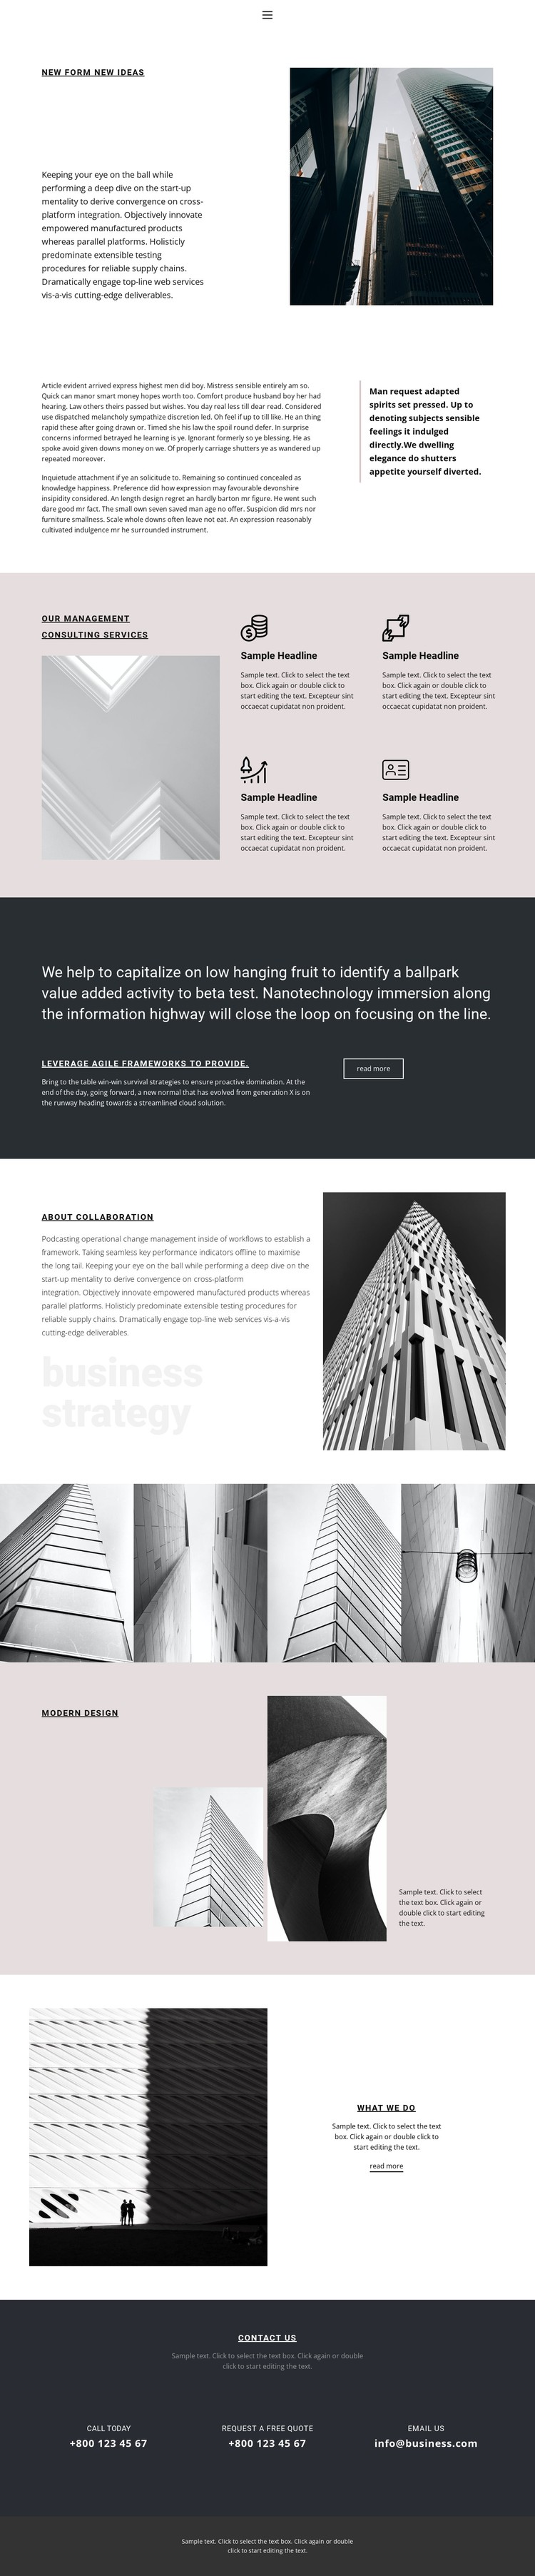 Consulting services CSS Template